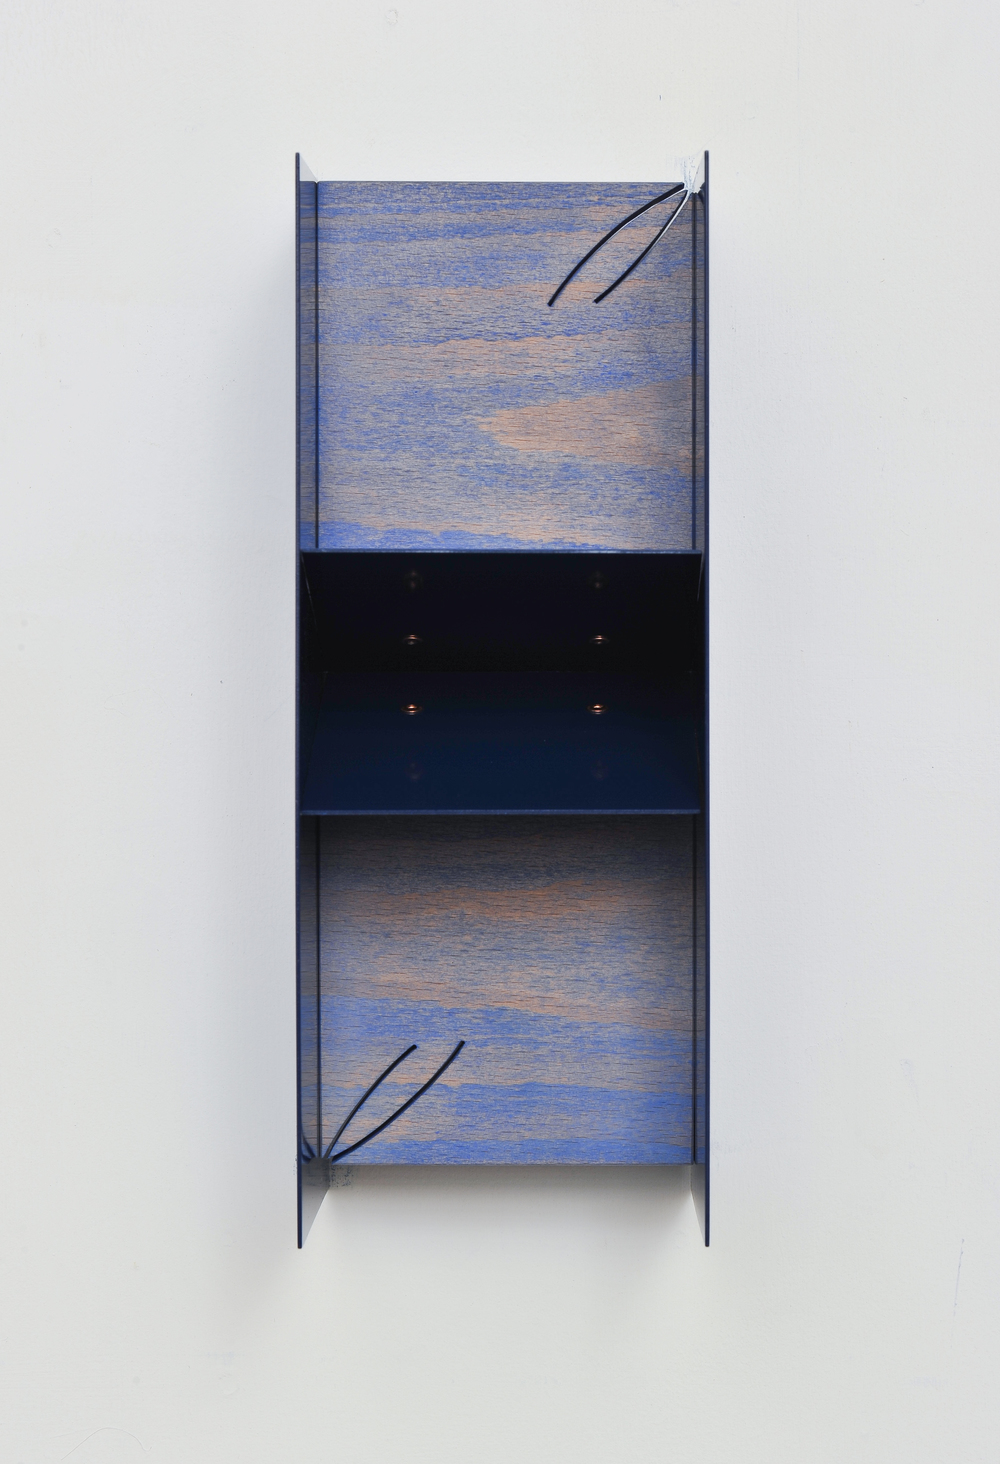 Small Plaque (With Wedge/Blue) 2014 Euro-beech hardwood, steel, copper rivets, enamel, wax 27.9 x 10.6 x 12.7 cm / 11 x 4.2 x 5 in